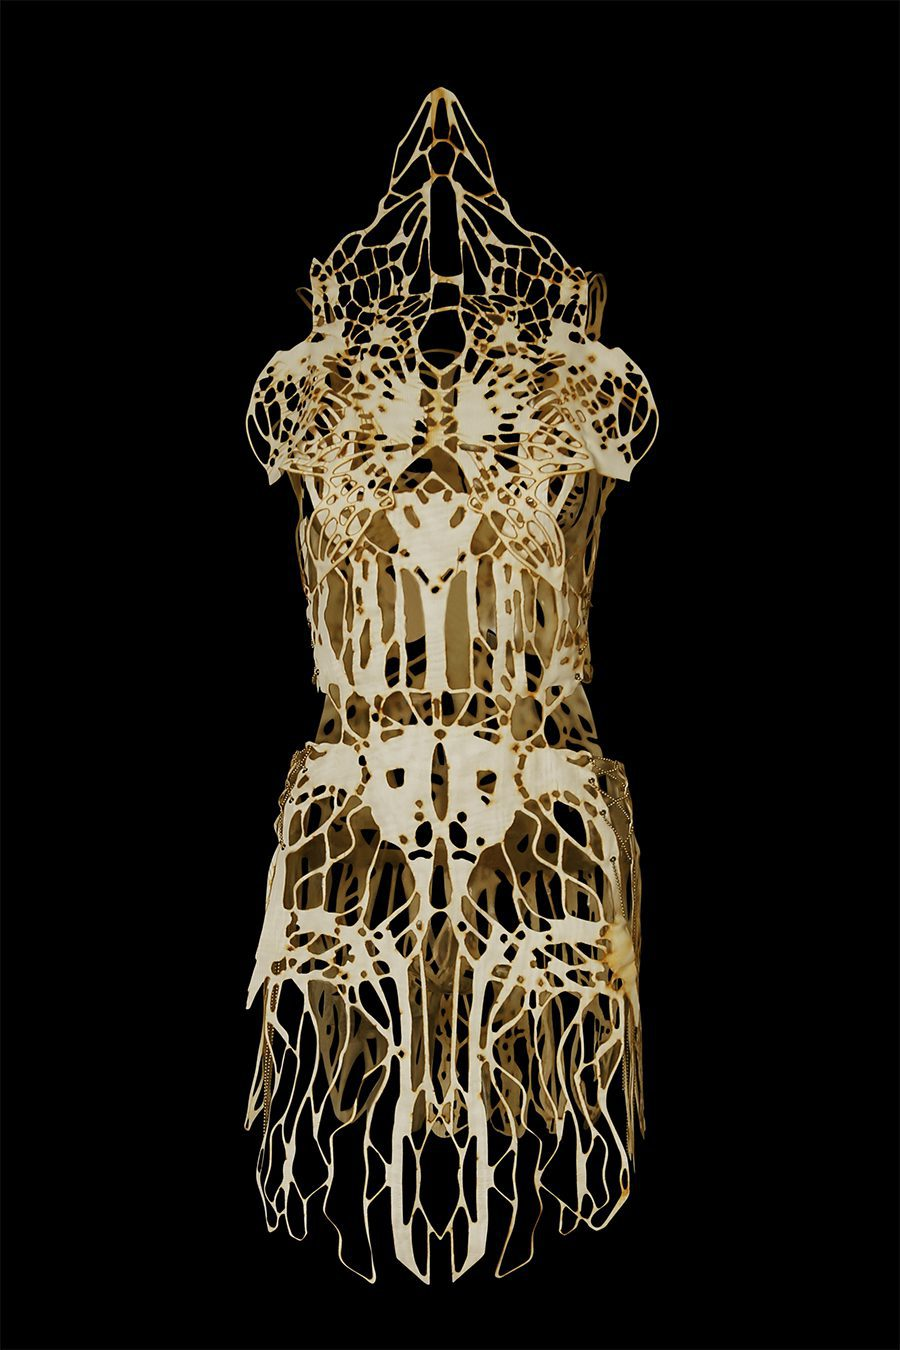 2017-Amy-Karle-Internal-Collection-cream-garment-based-on-tendons-and-ligaments-v2-05